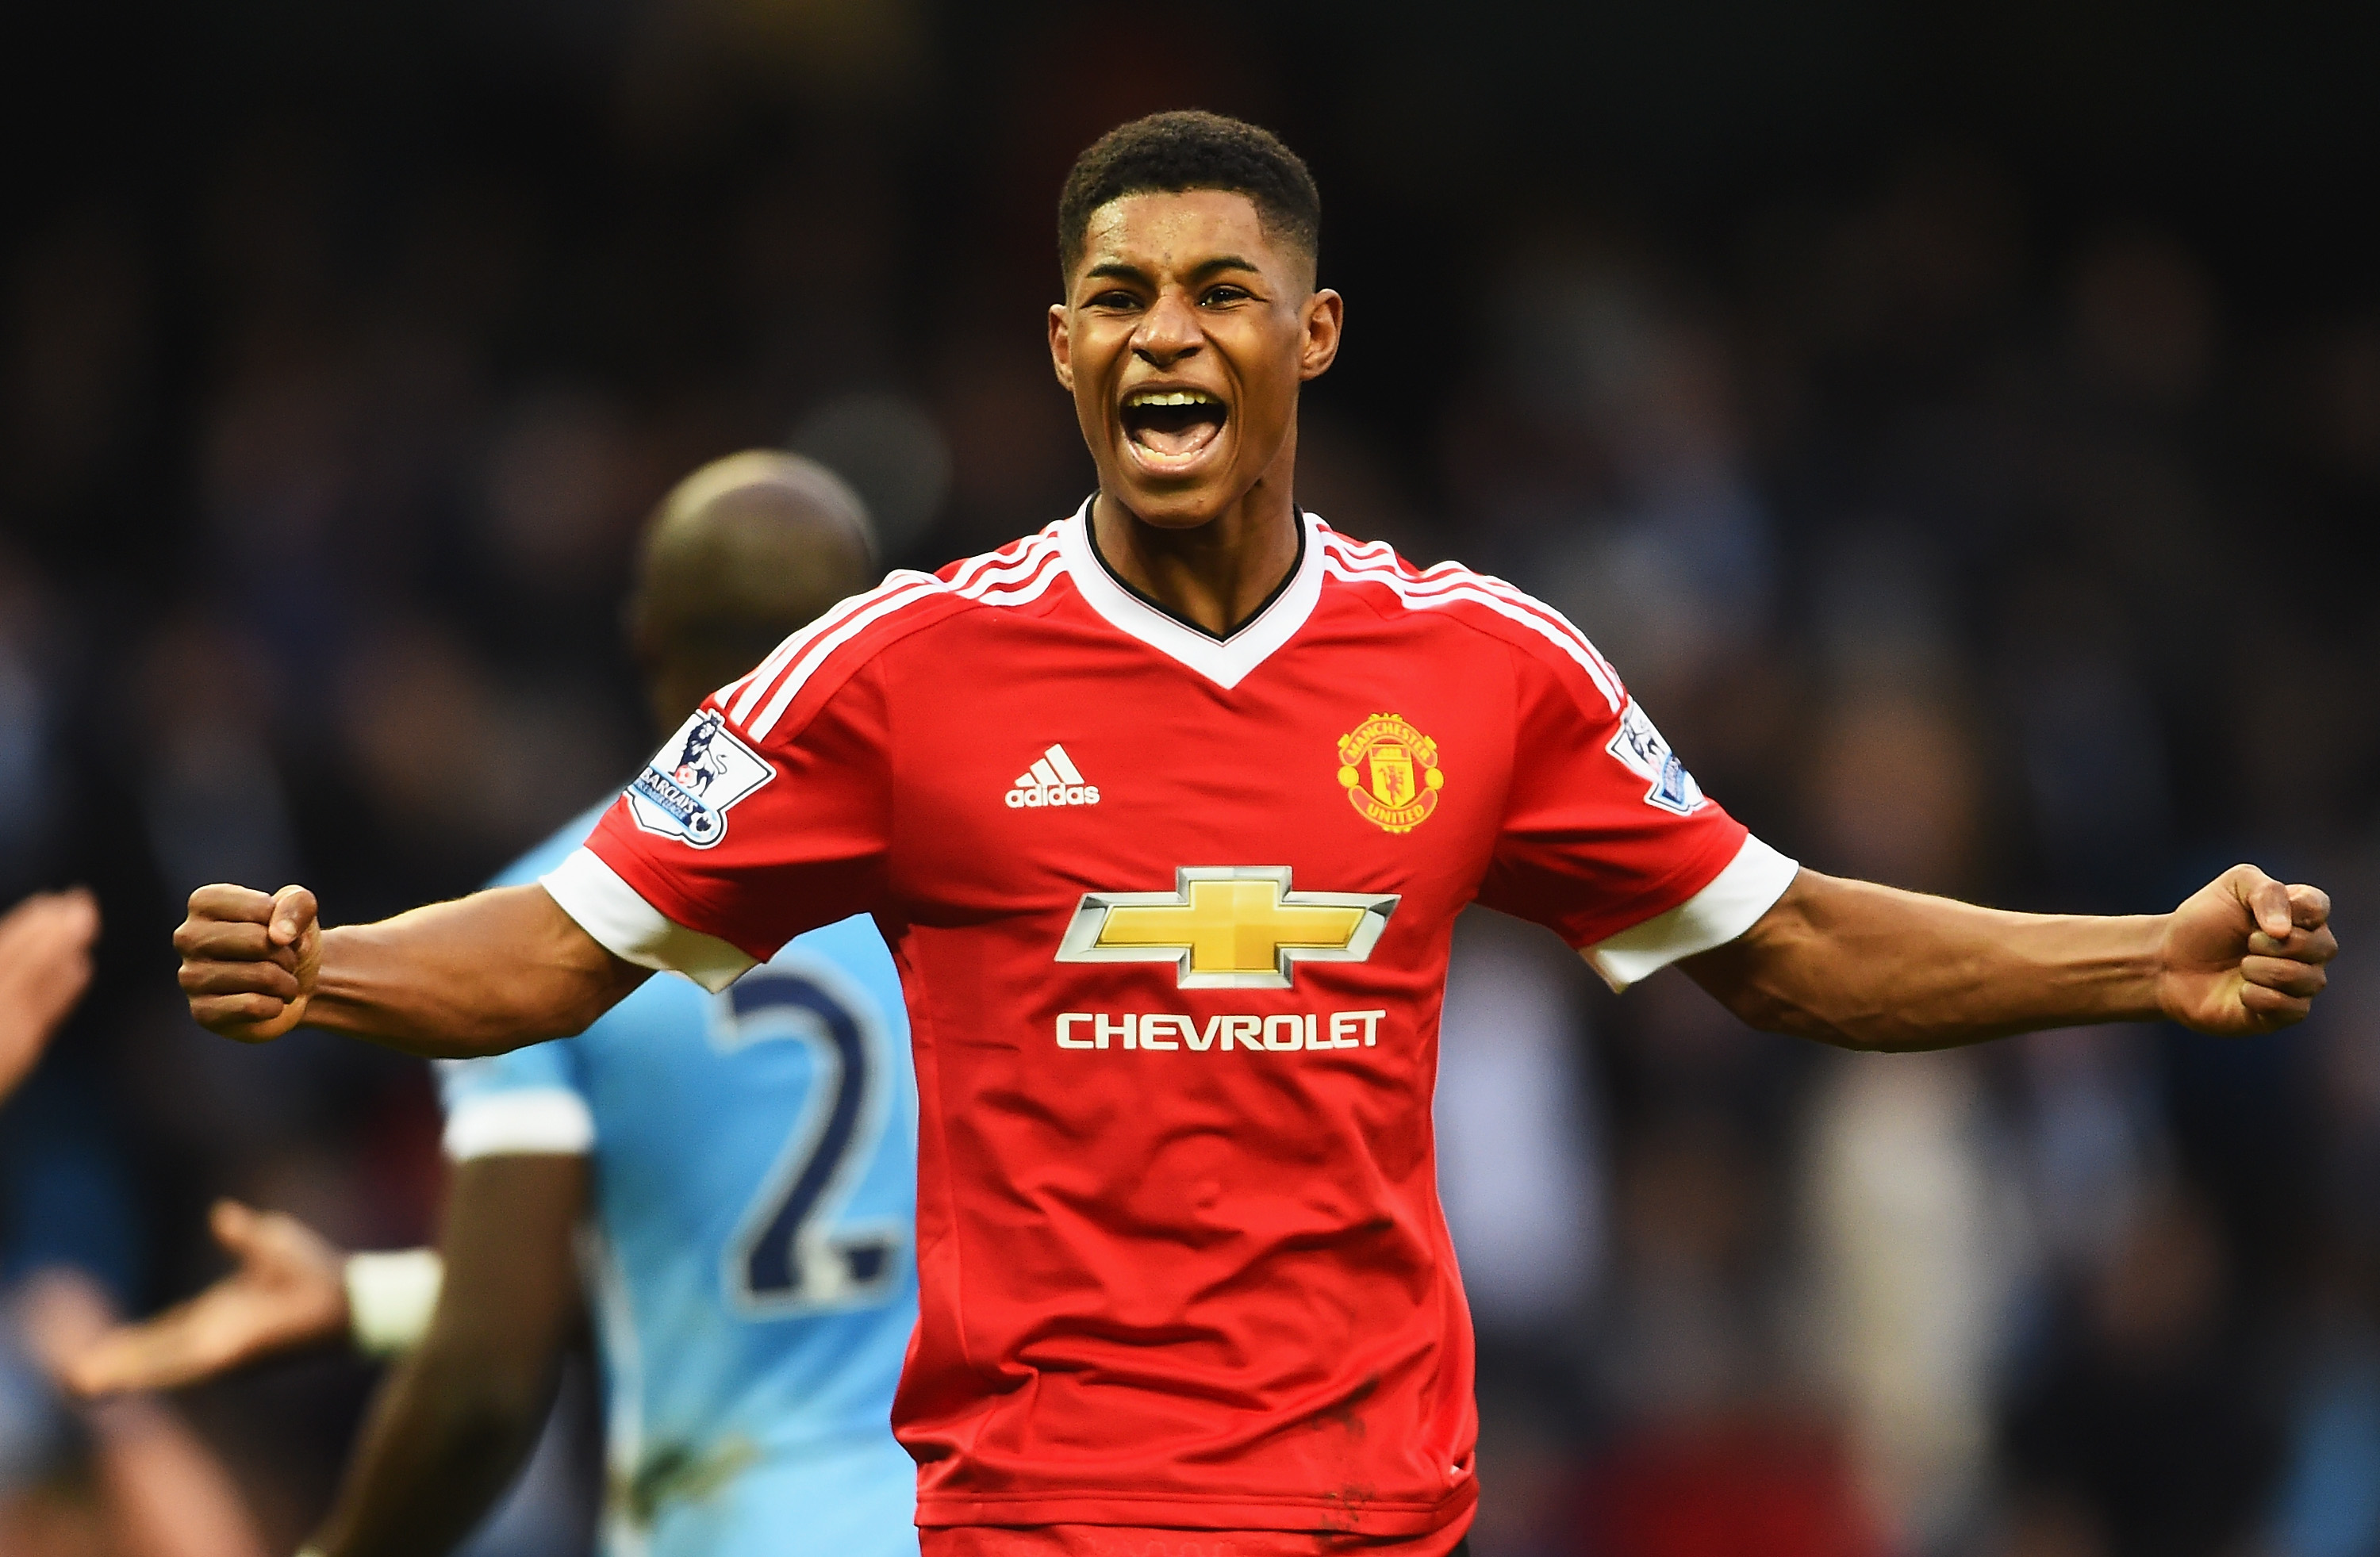 Why Manchester City are still in Manchester United's shadow